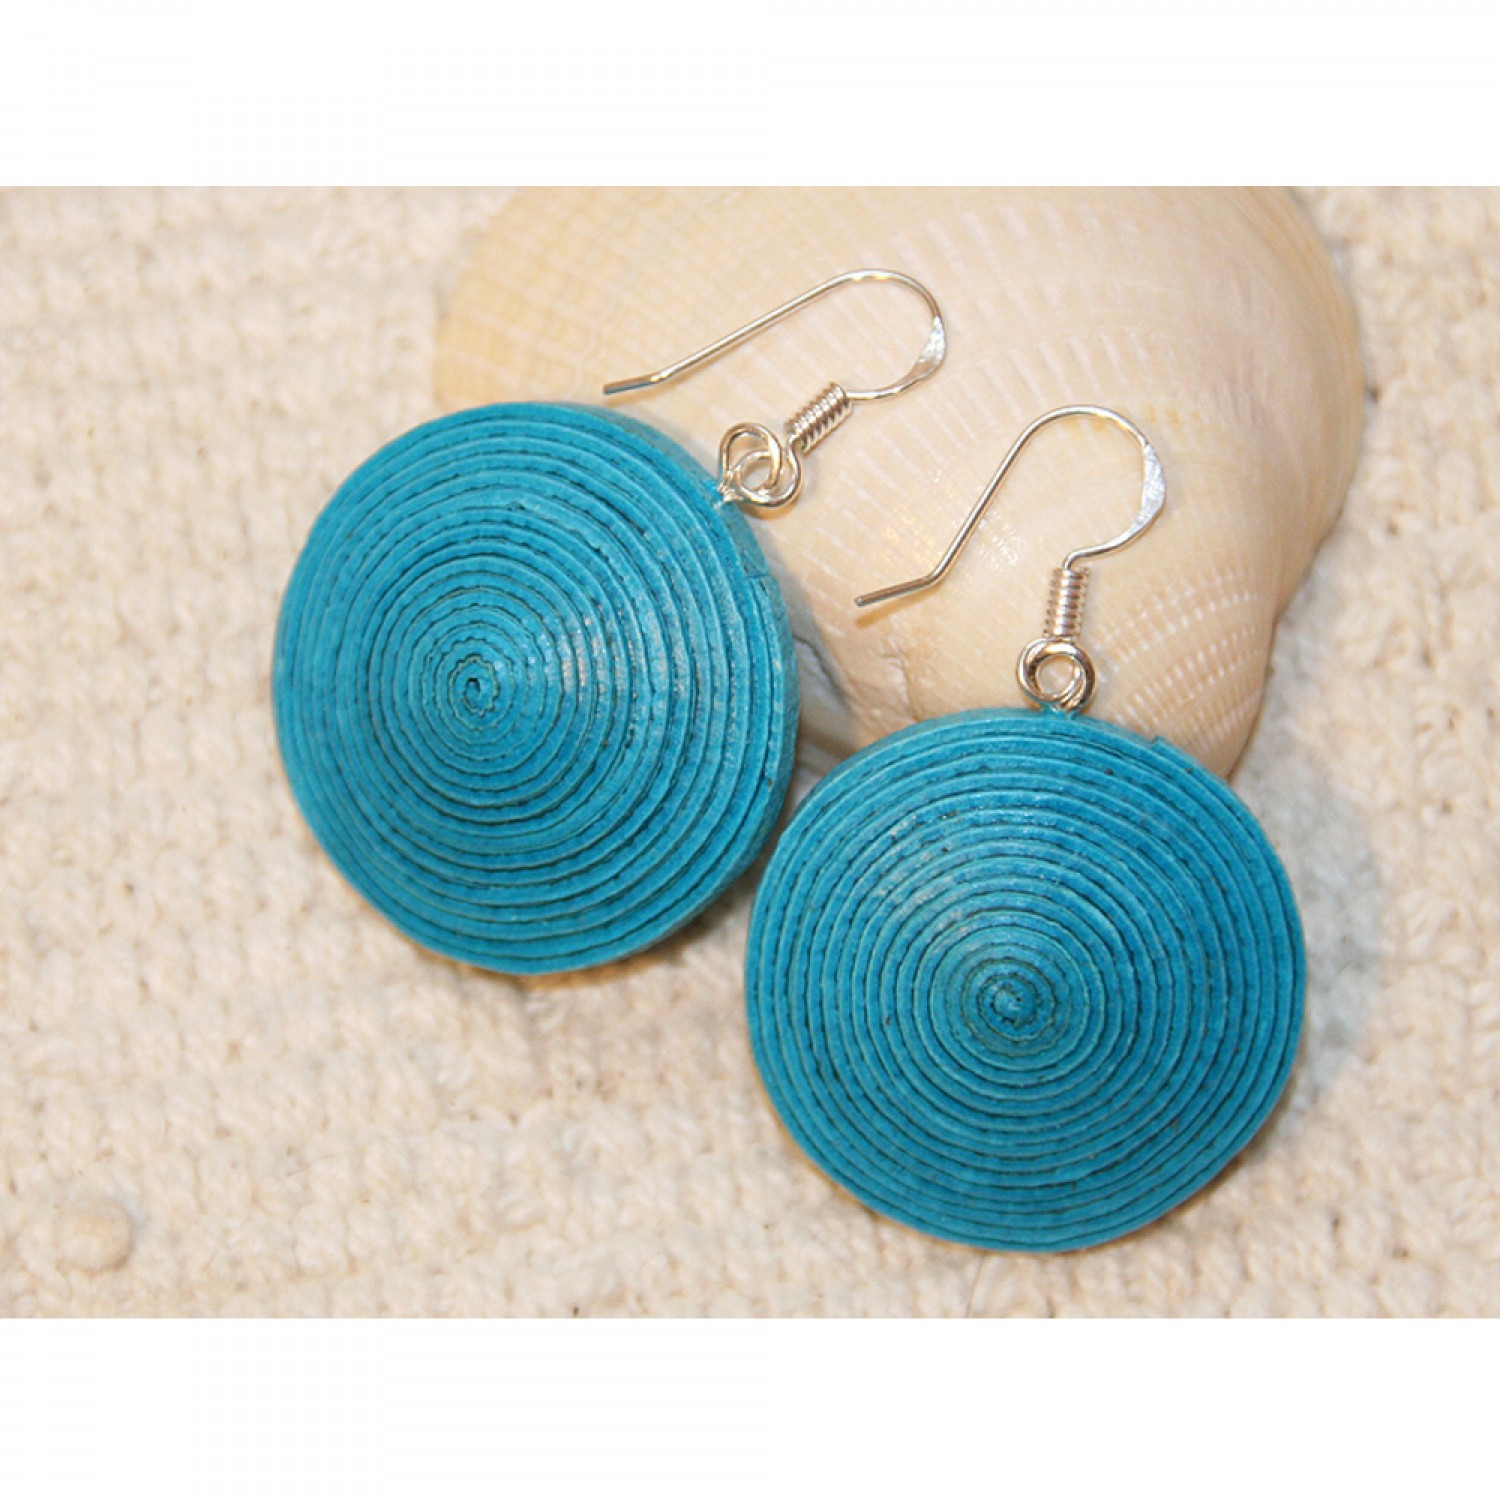 Disc Earrings made of eco paper - turquoise